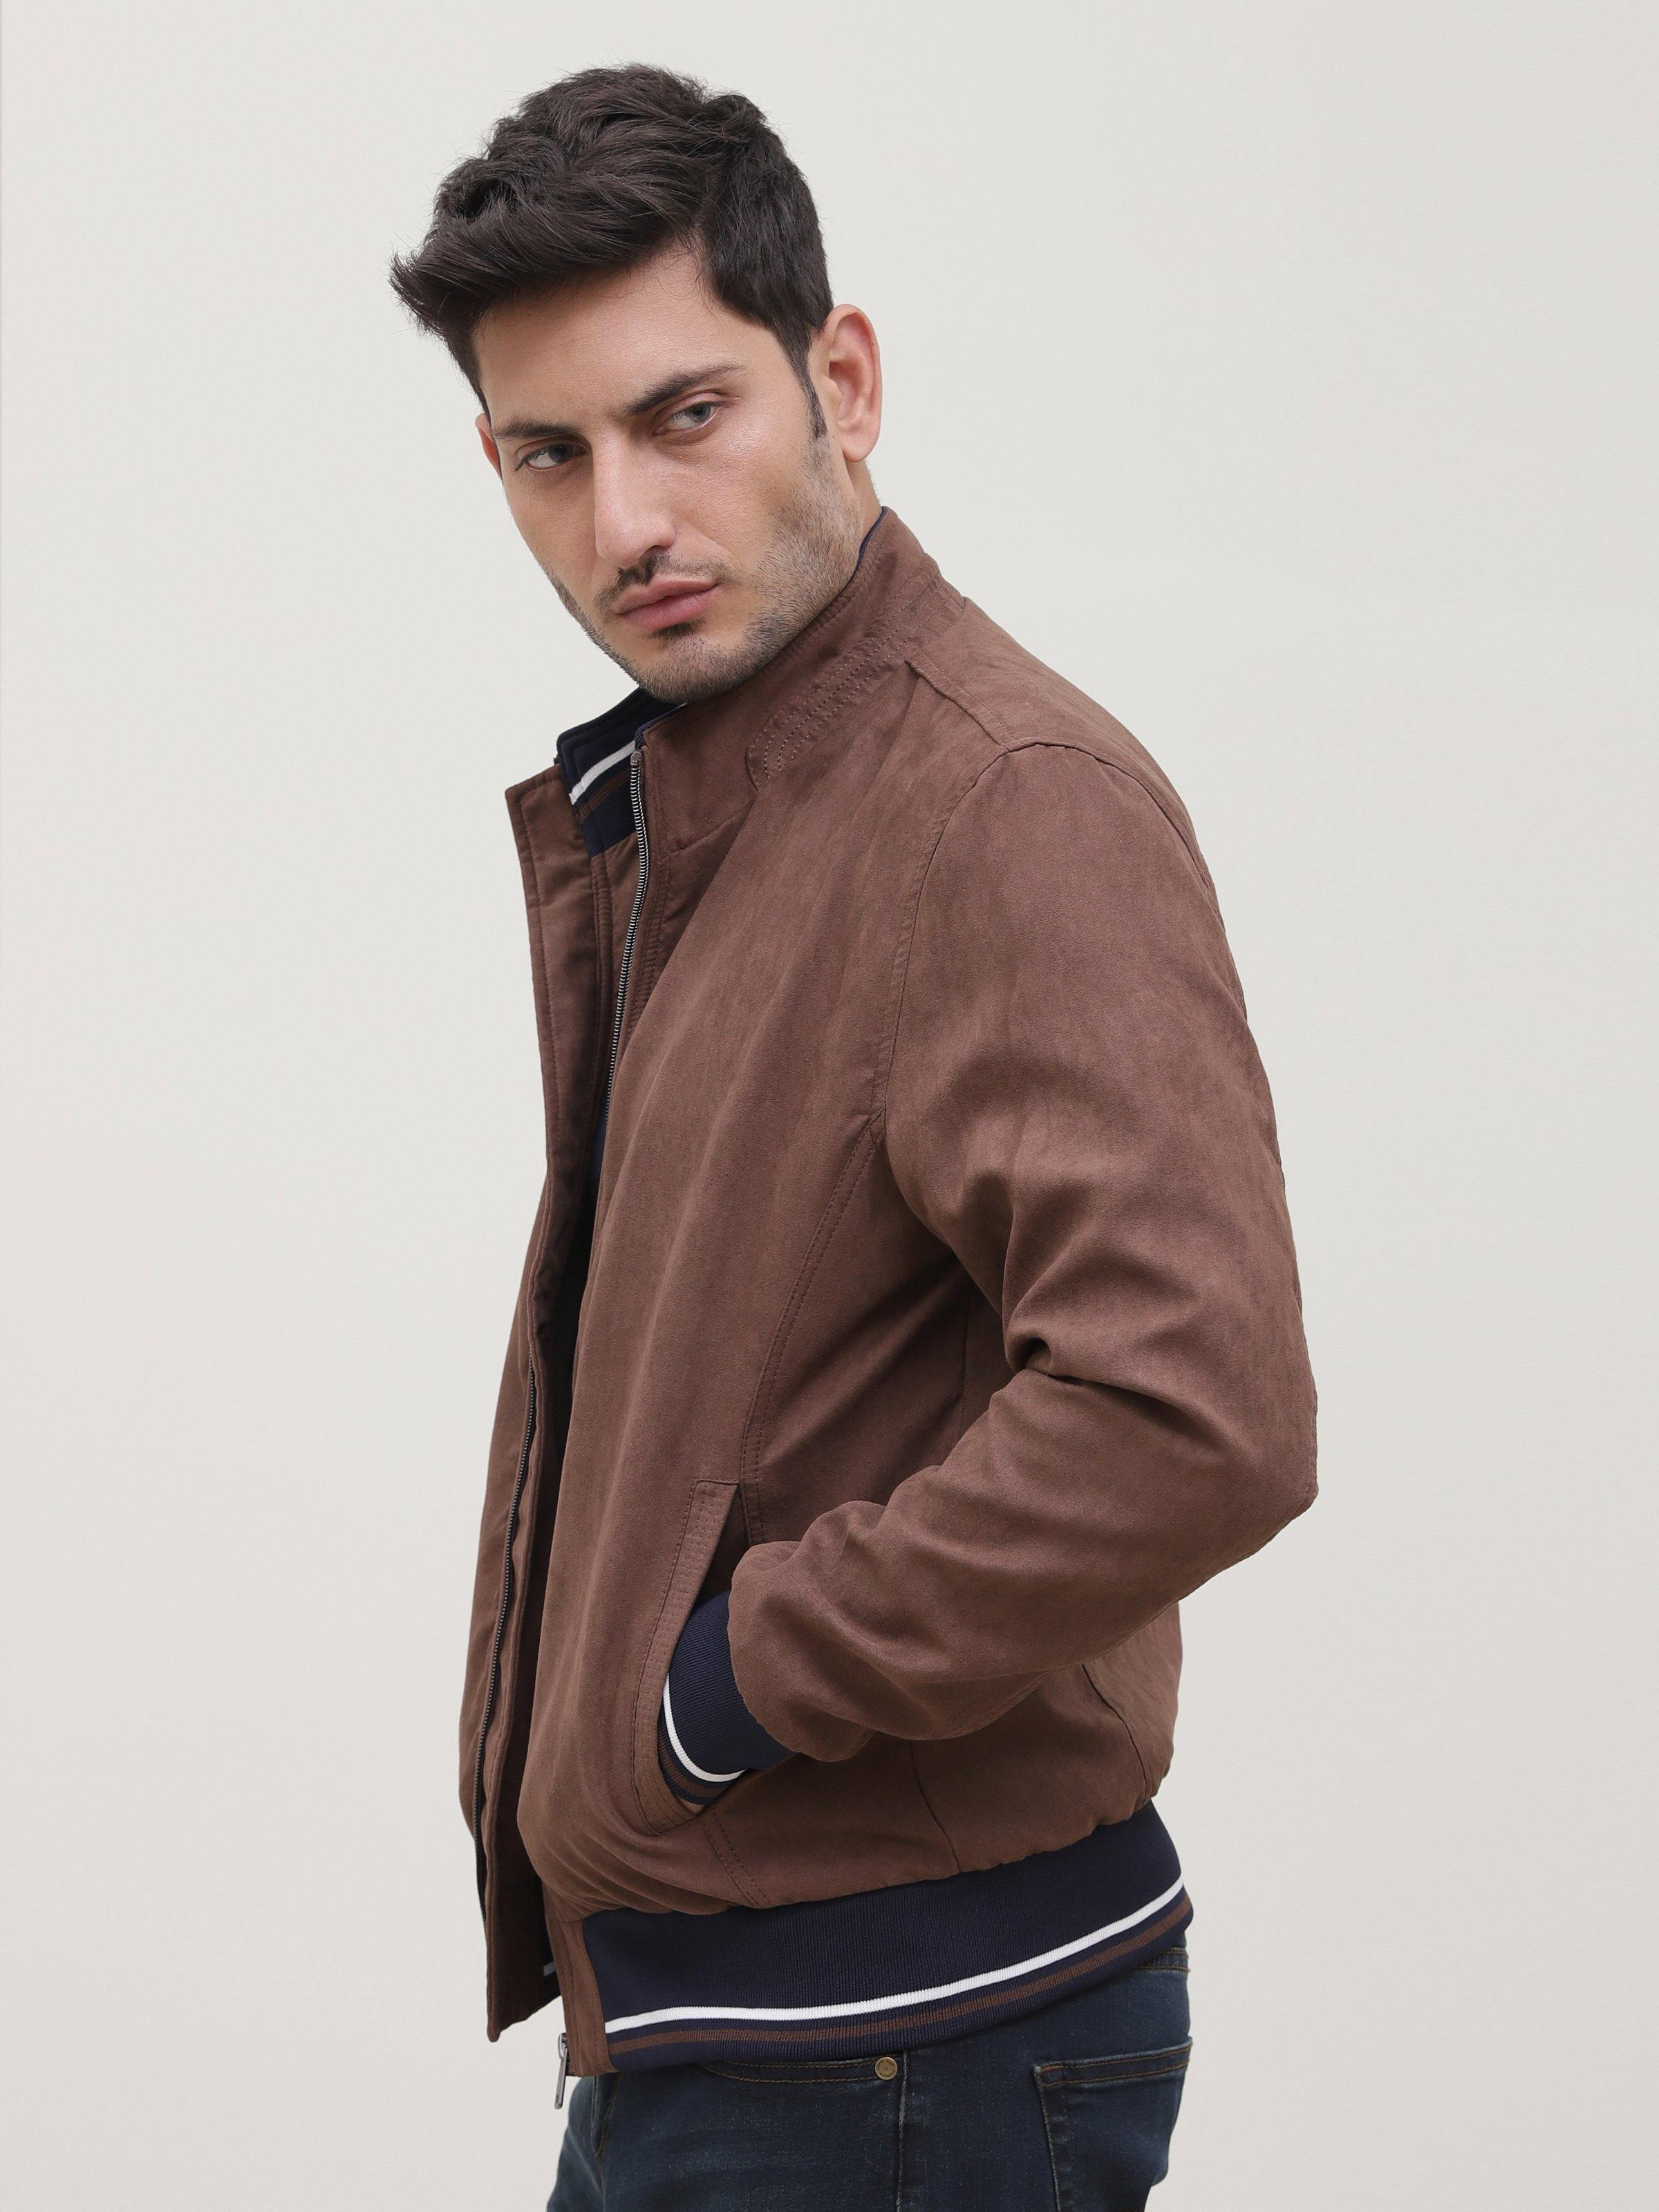 SUEDE JACKET BROWN - Charcoal Clothing - N-JACKETS - New